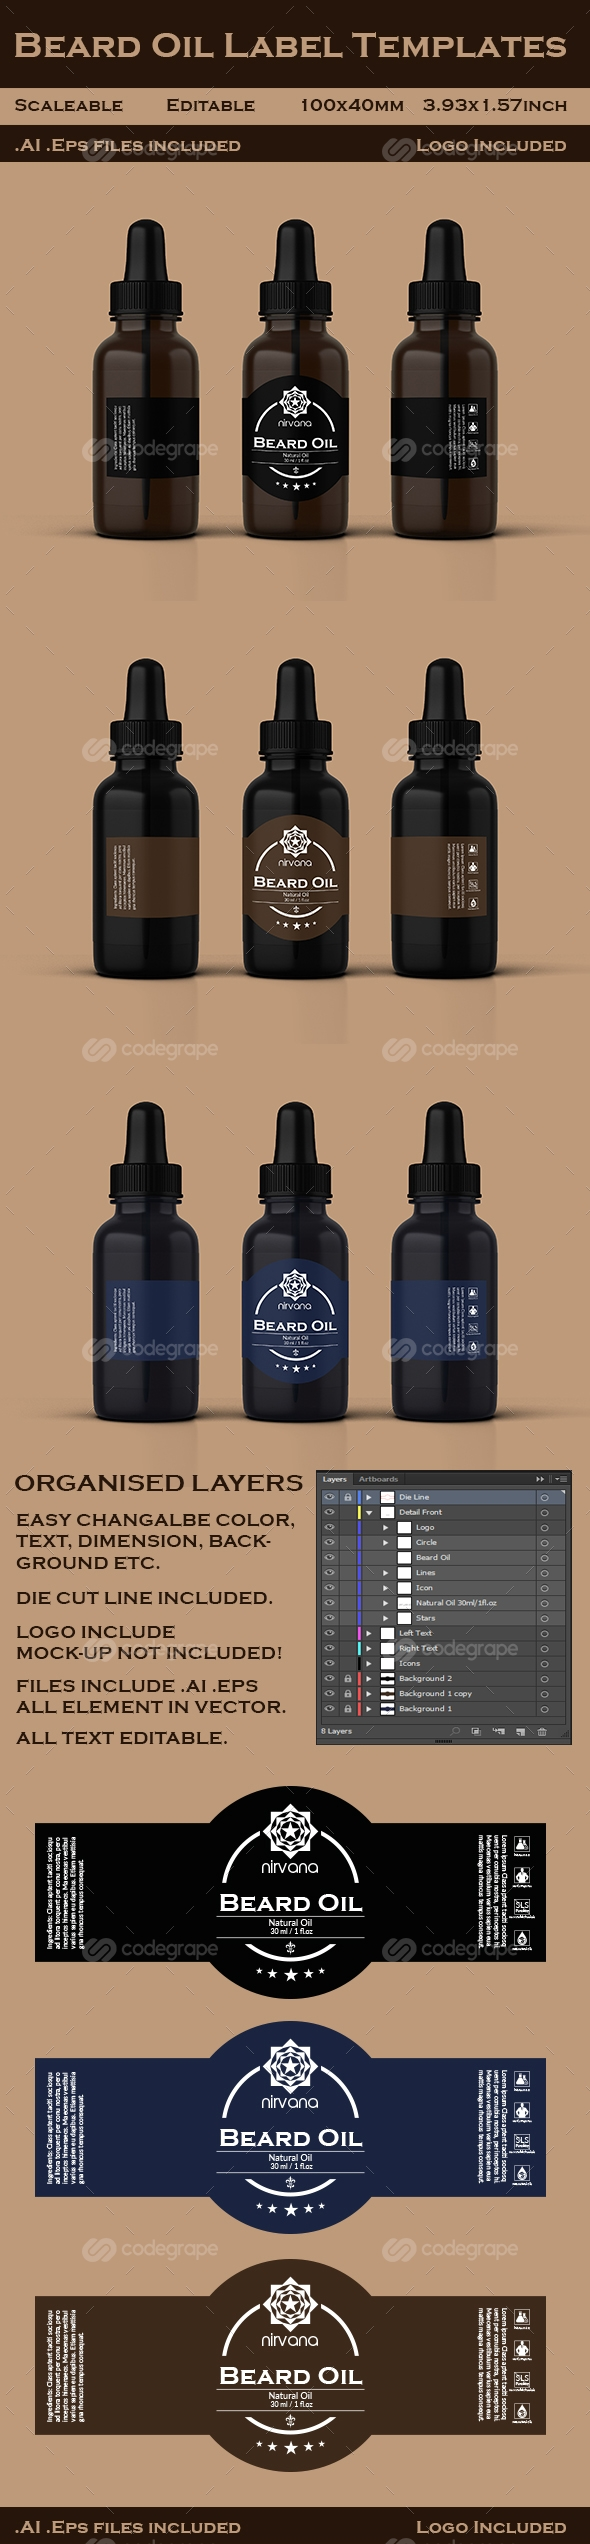 Beard Oil Label Templates Print | CodeGrape